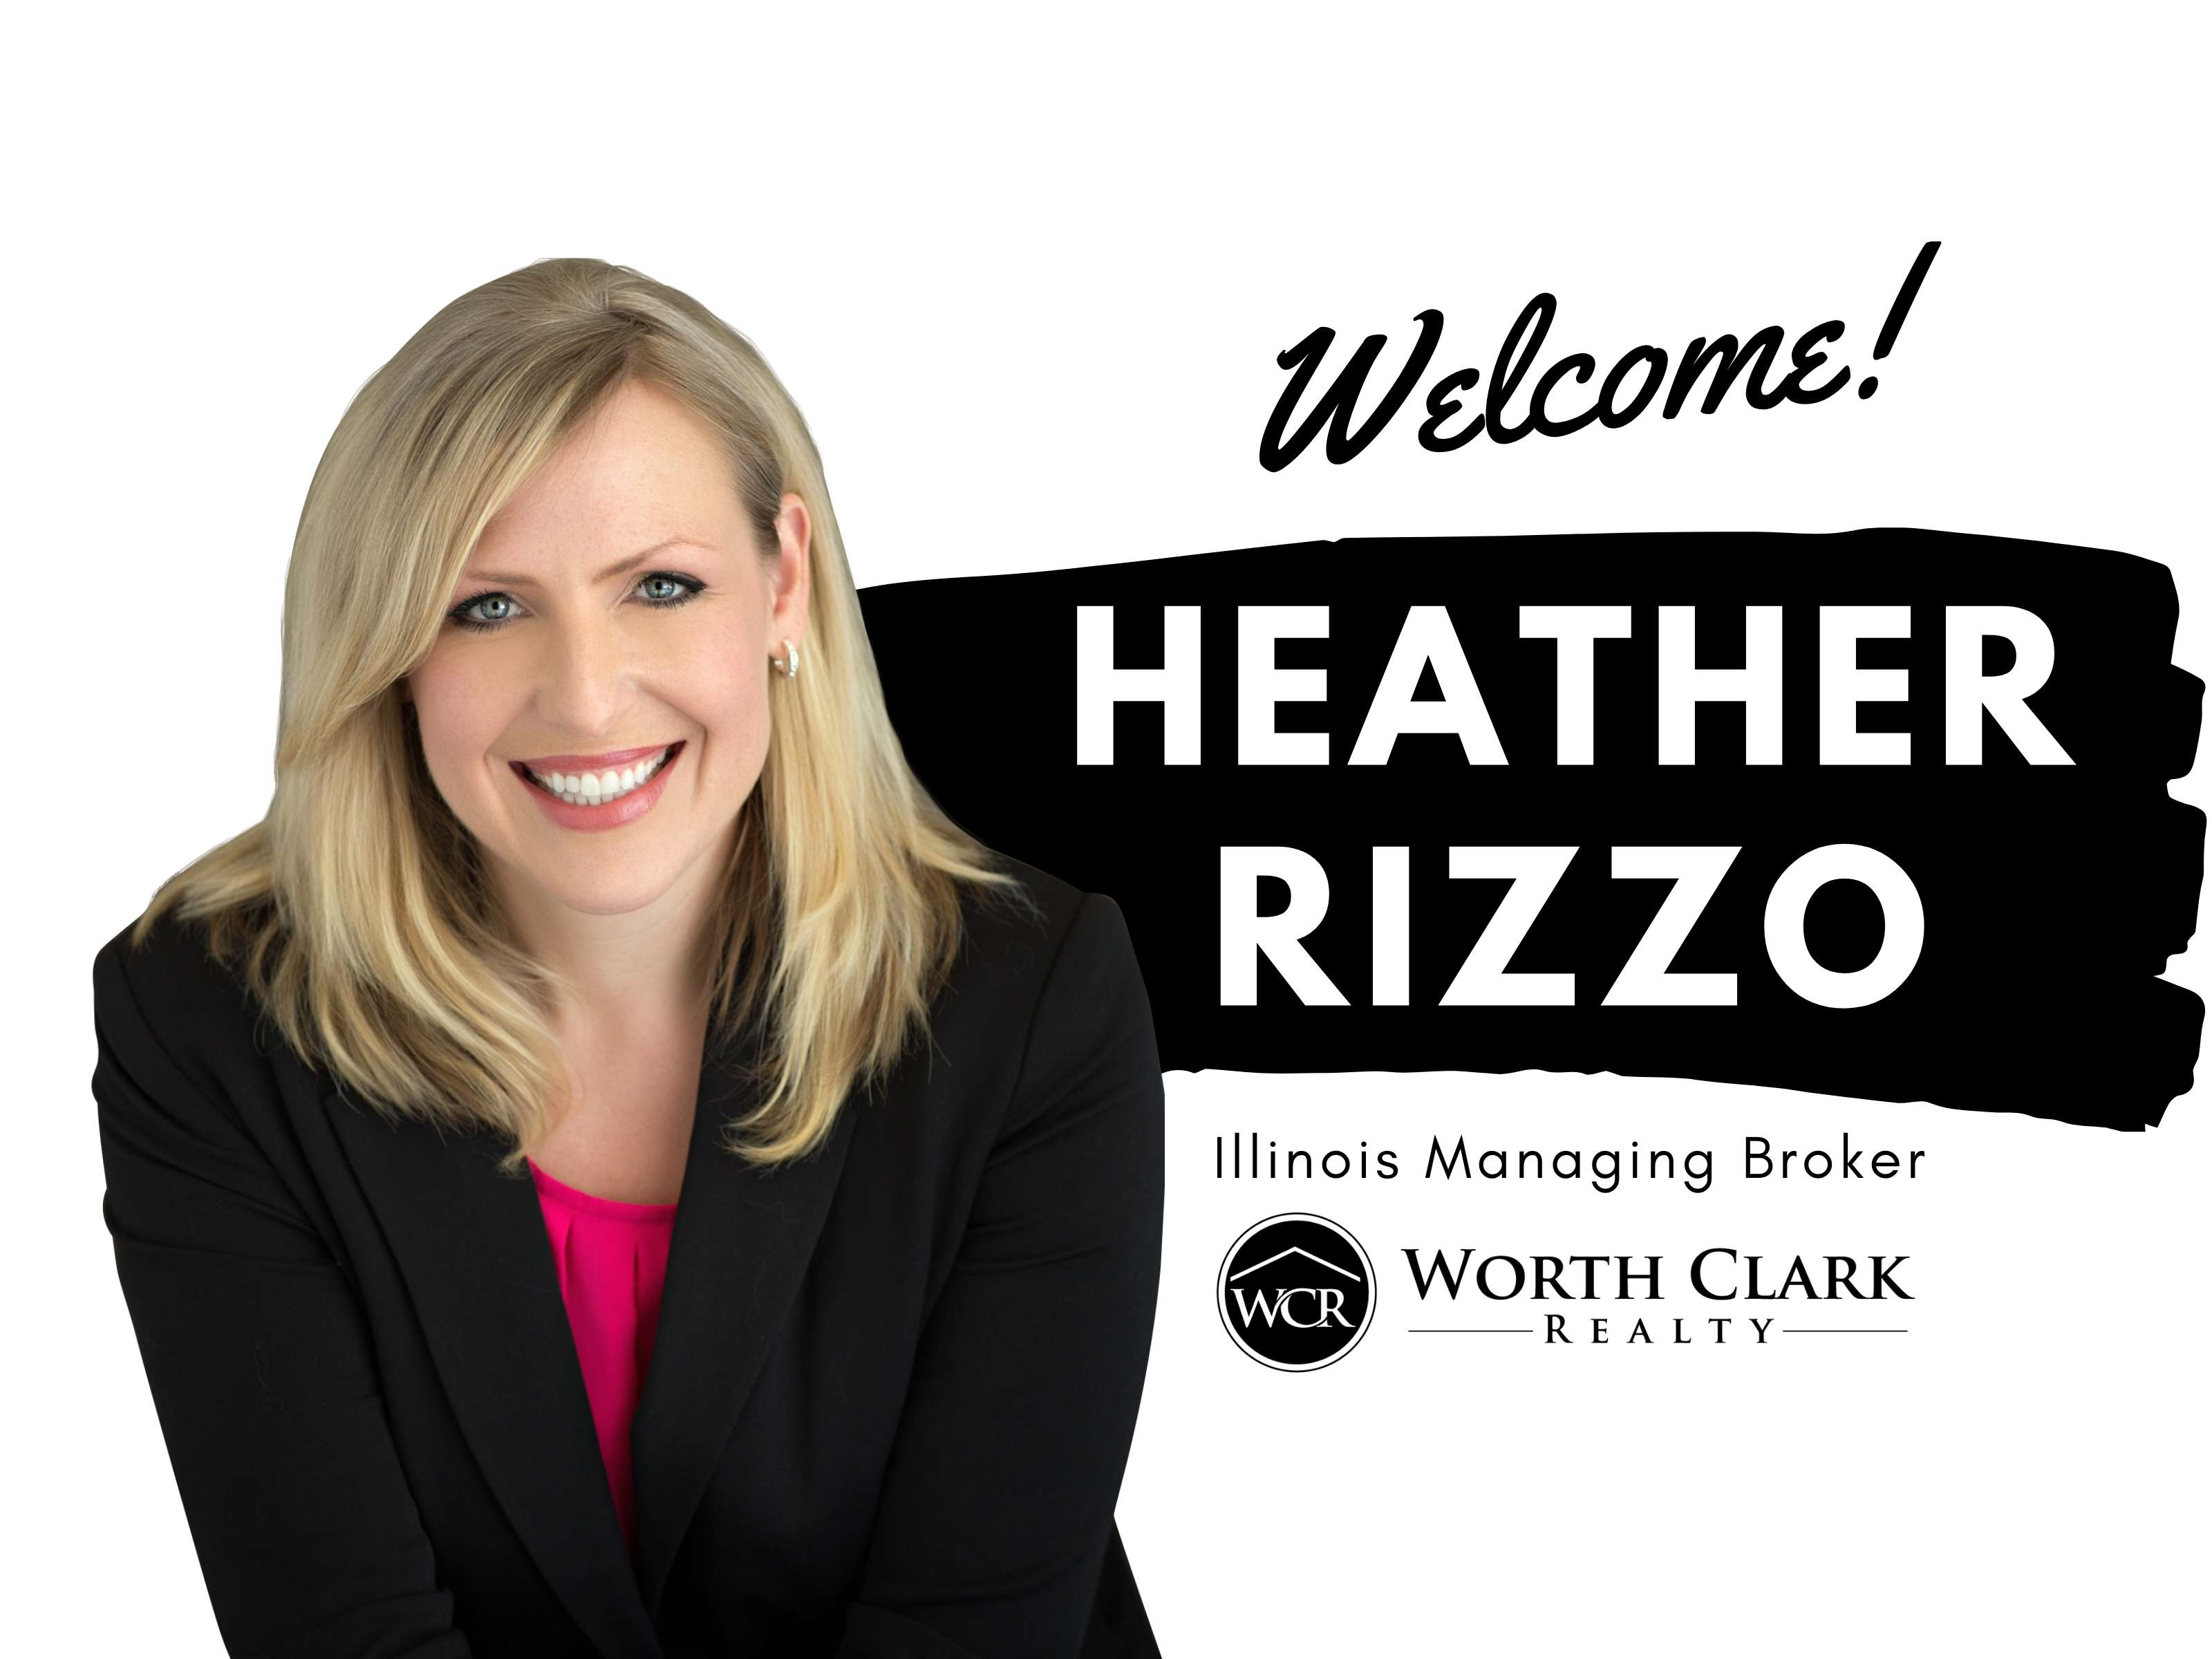 Heather Rizzo Joins Worth Clark Realty